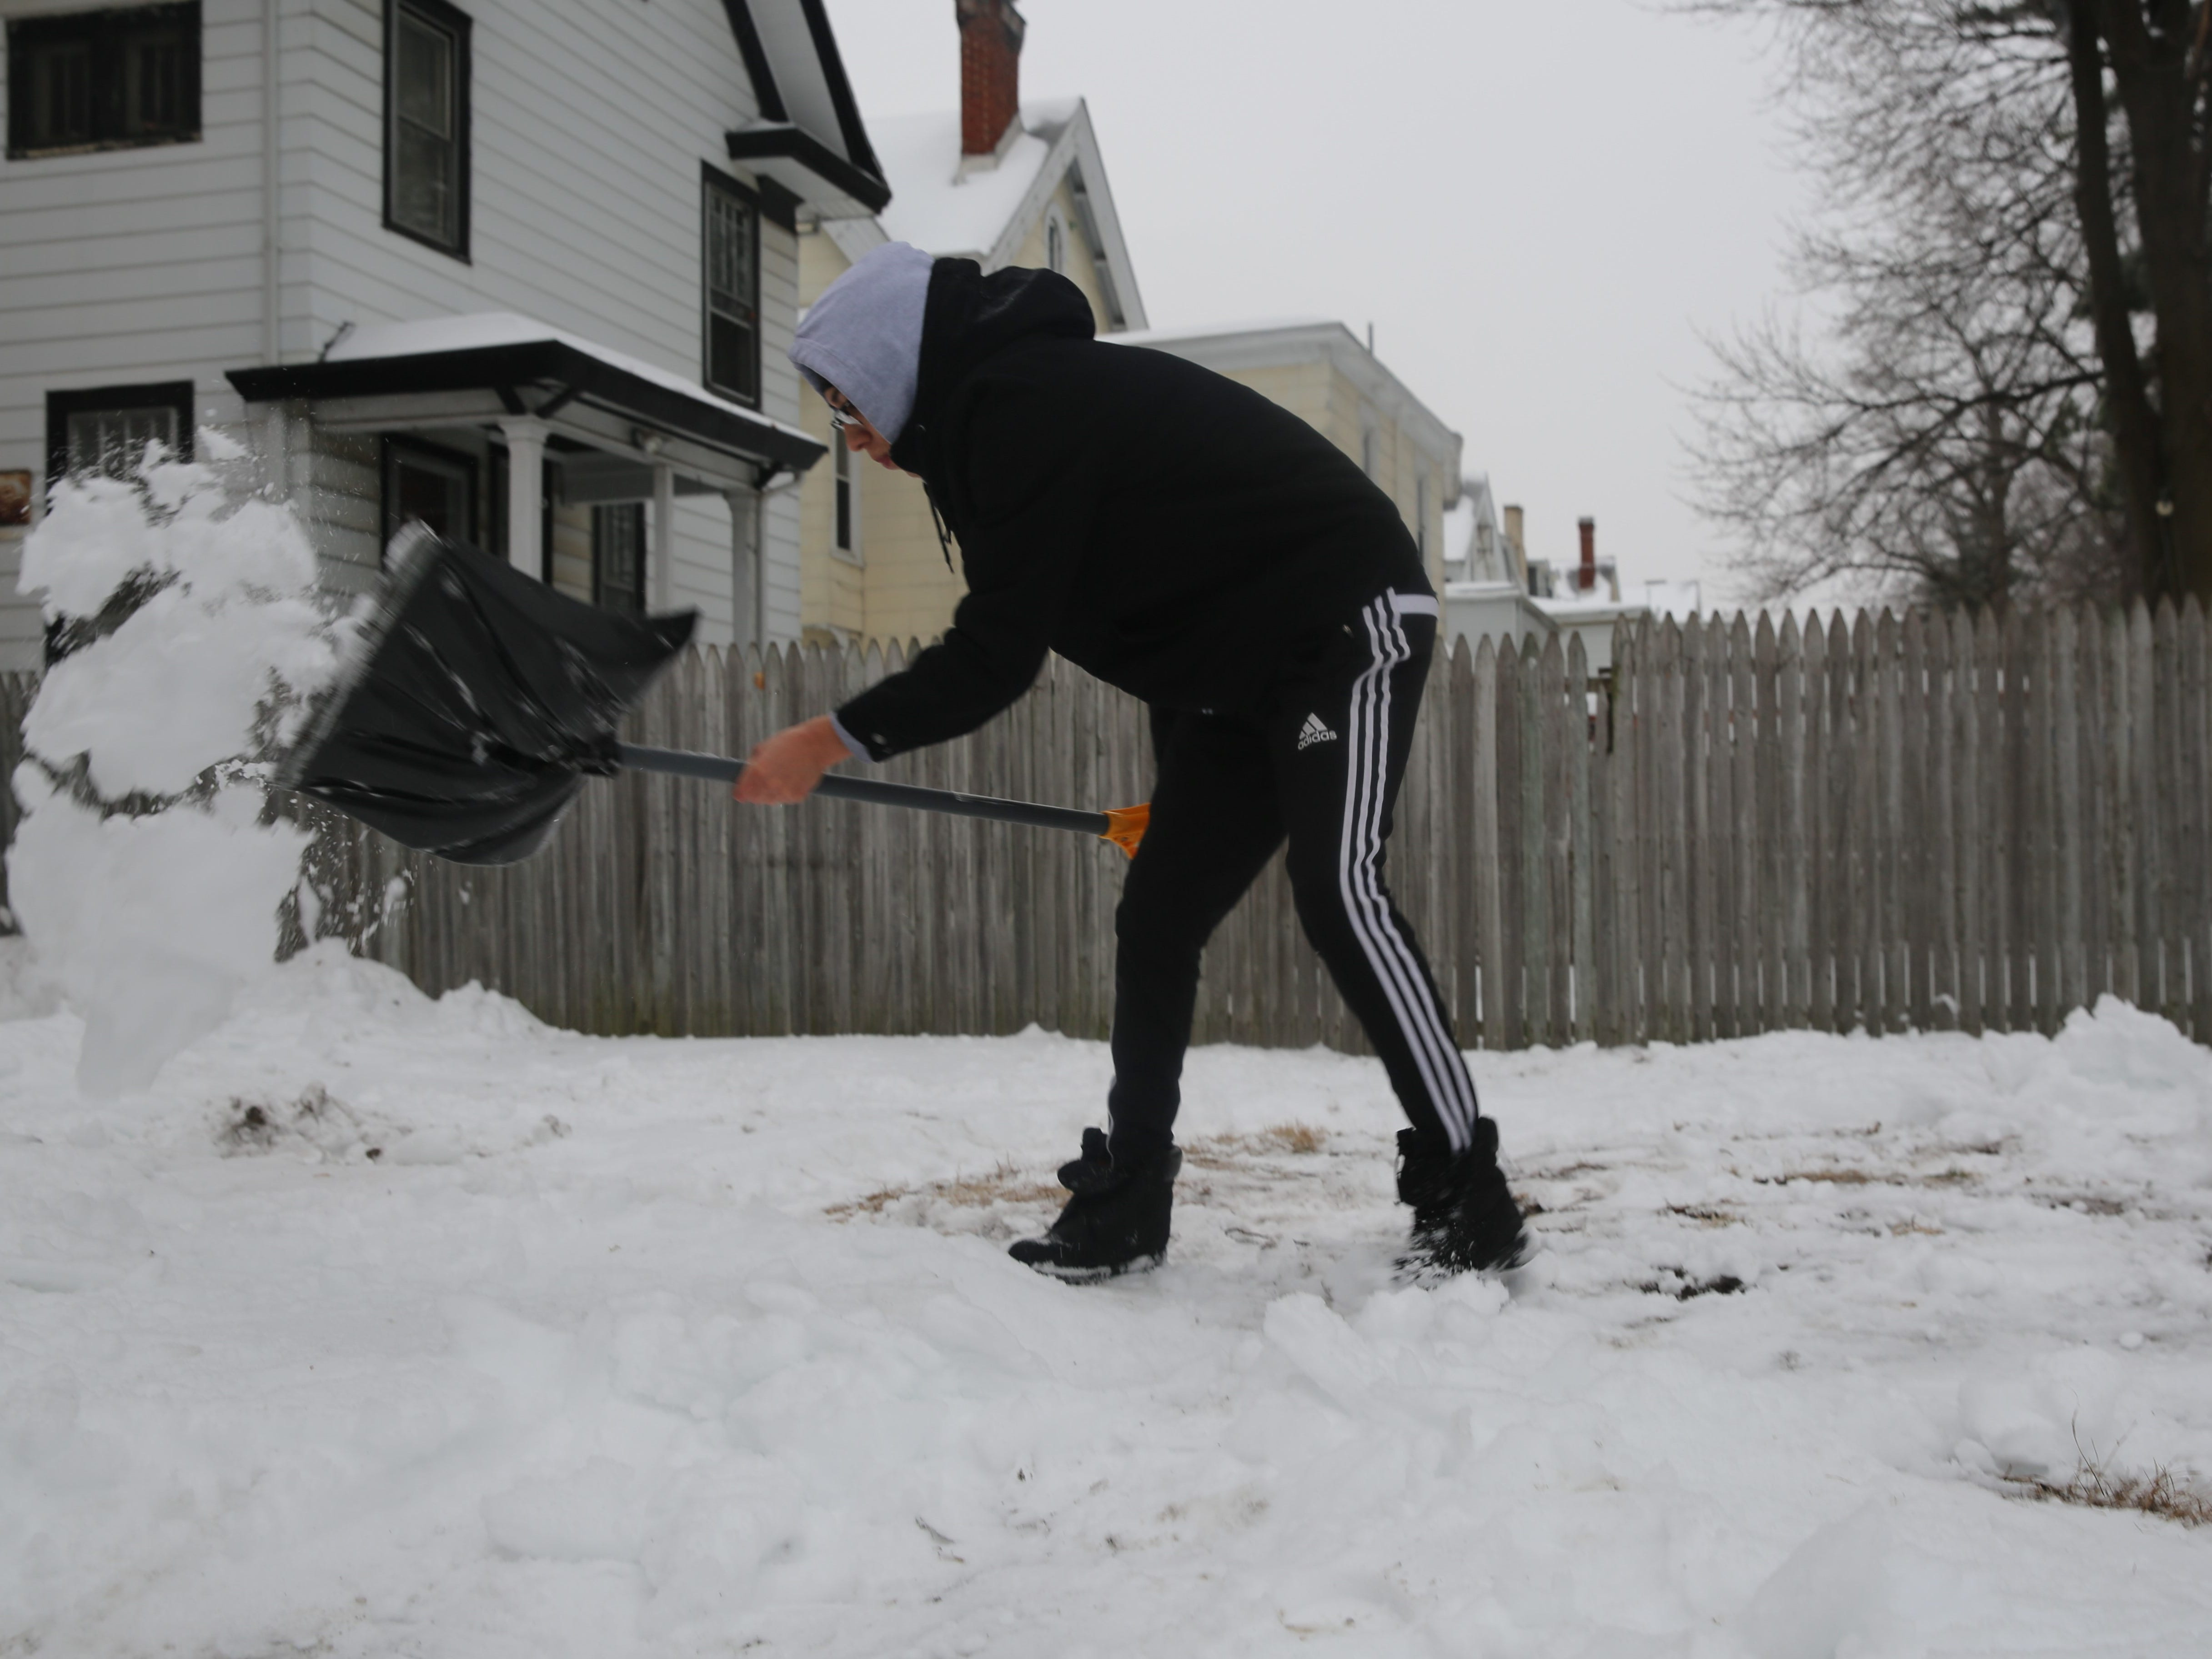 Cristian Camargo, an 18-year-old Arlington High School senior, shovels his family's driveway in the City of Poughkeepsie on Sunday. His advice was to take it easy and not overwork himself.